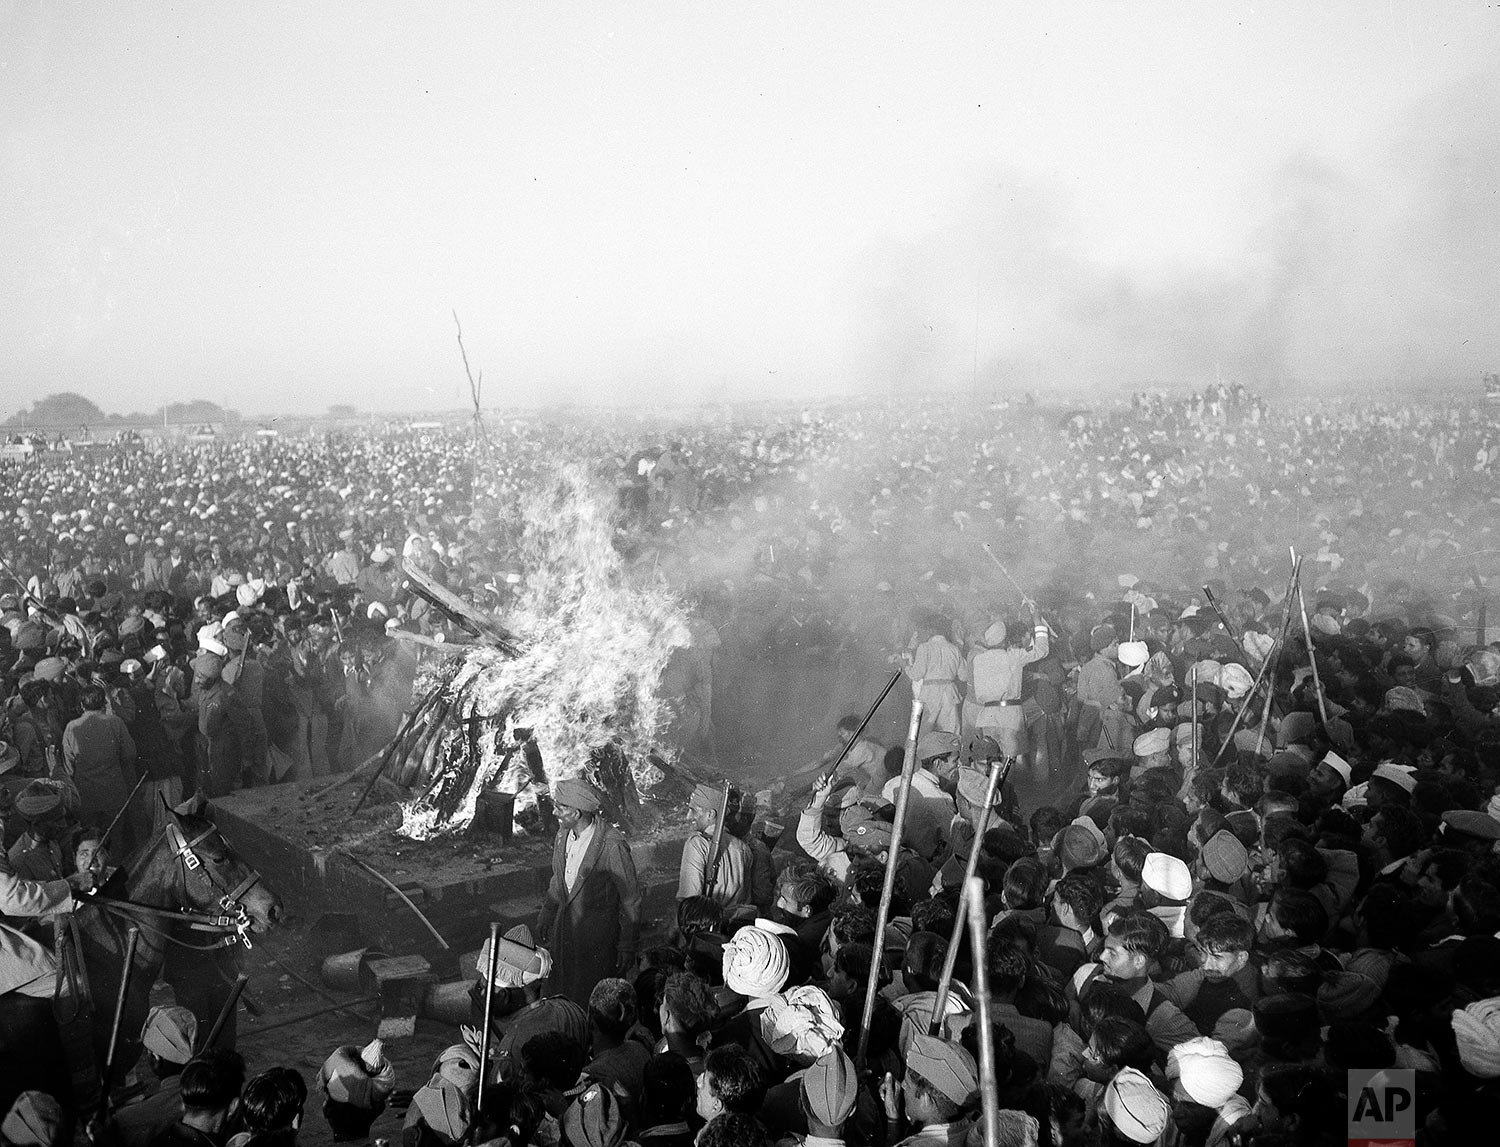 Police, the military and volunteer guards attempt to beat back the crowds as it surges forward towards the funeral pyre of Mohandas K. Gandhi, assassinated Indian spiritual leader, in New Delhi, Jan. 31, 1948. (AP Photo/Max Desfor)